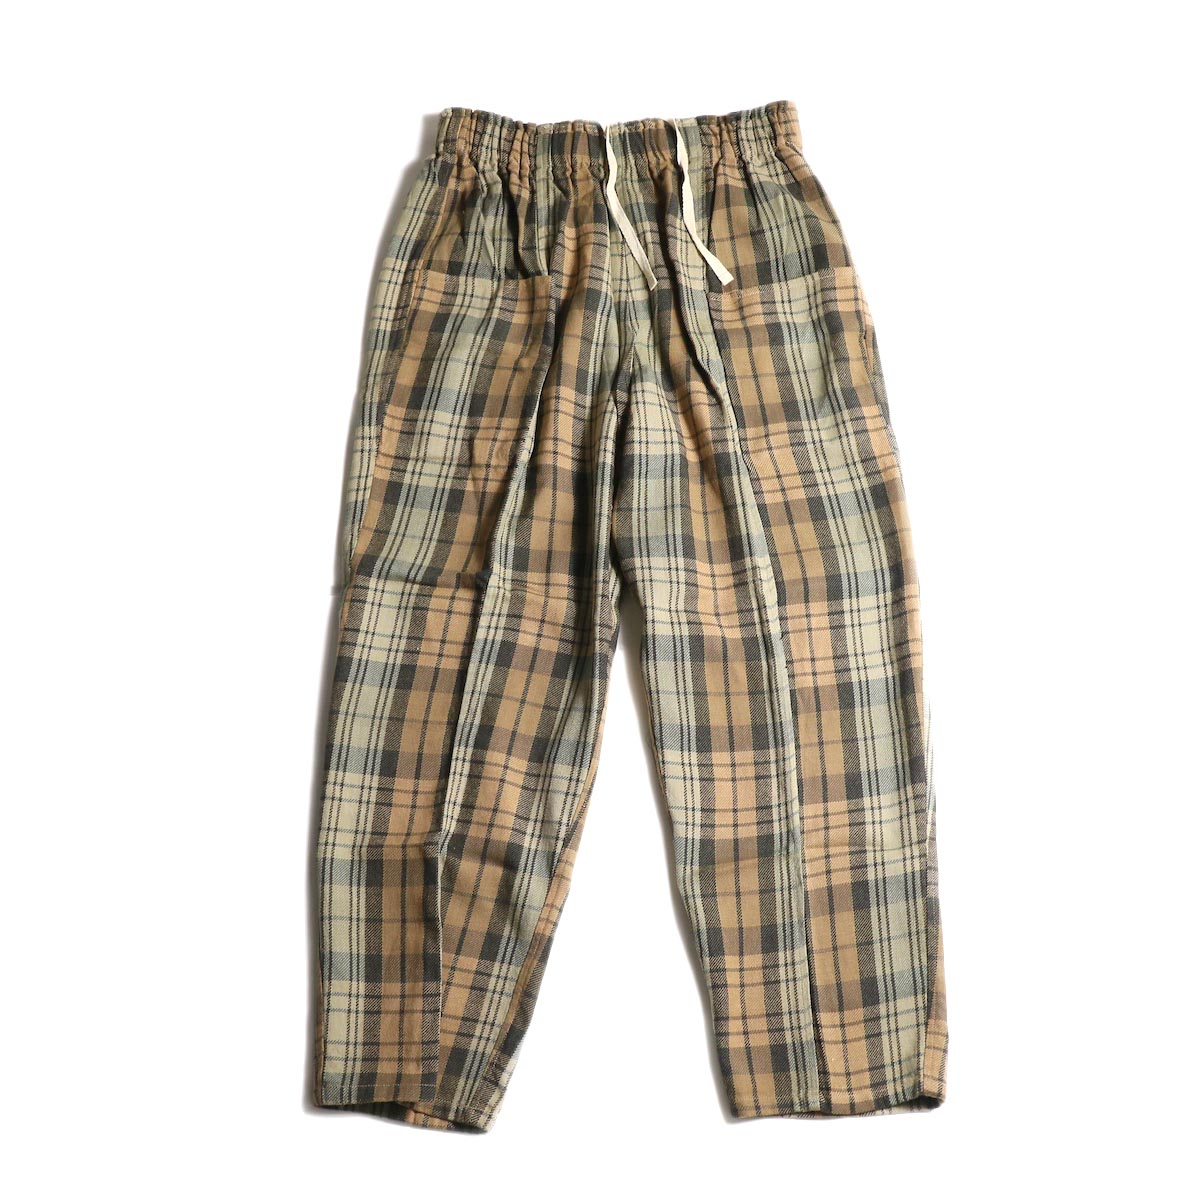 SOUTH2 WEST8 / Army String Pant -Plaid Twill (Khaki/Black)